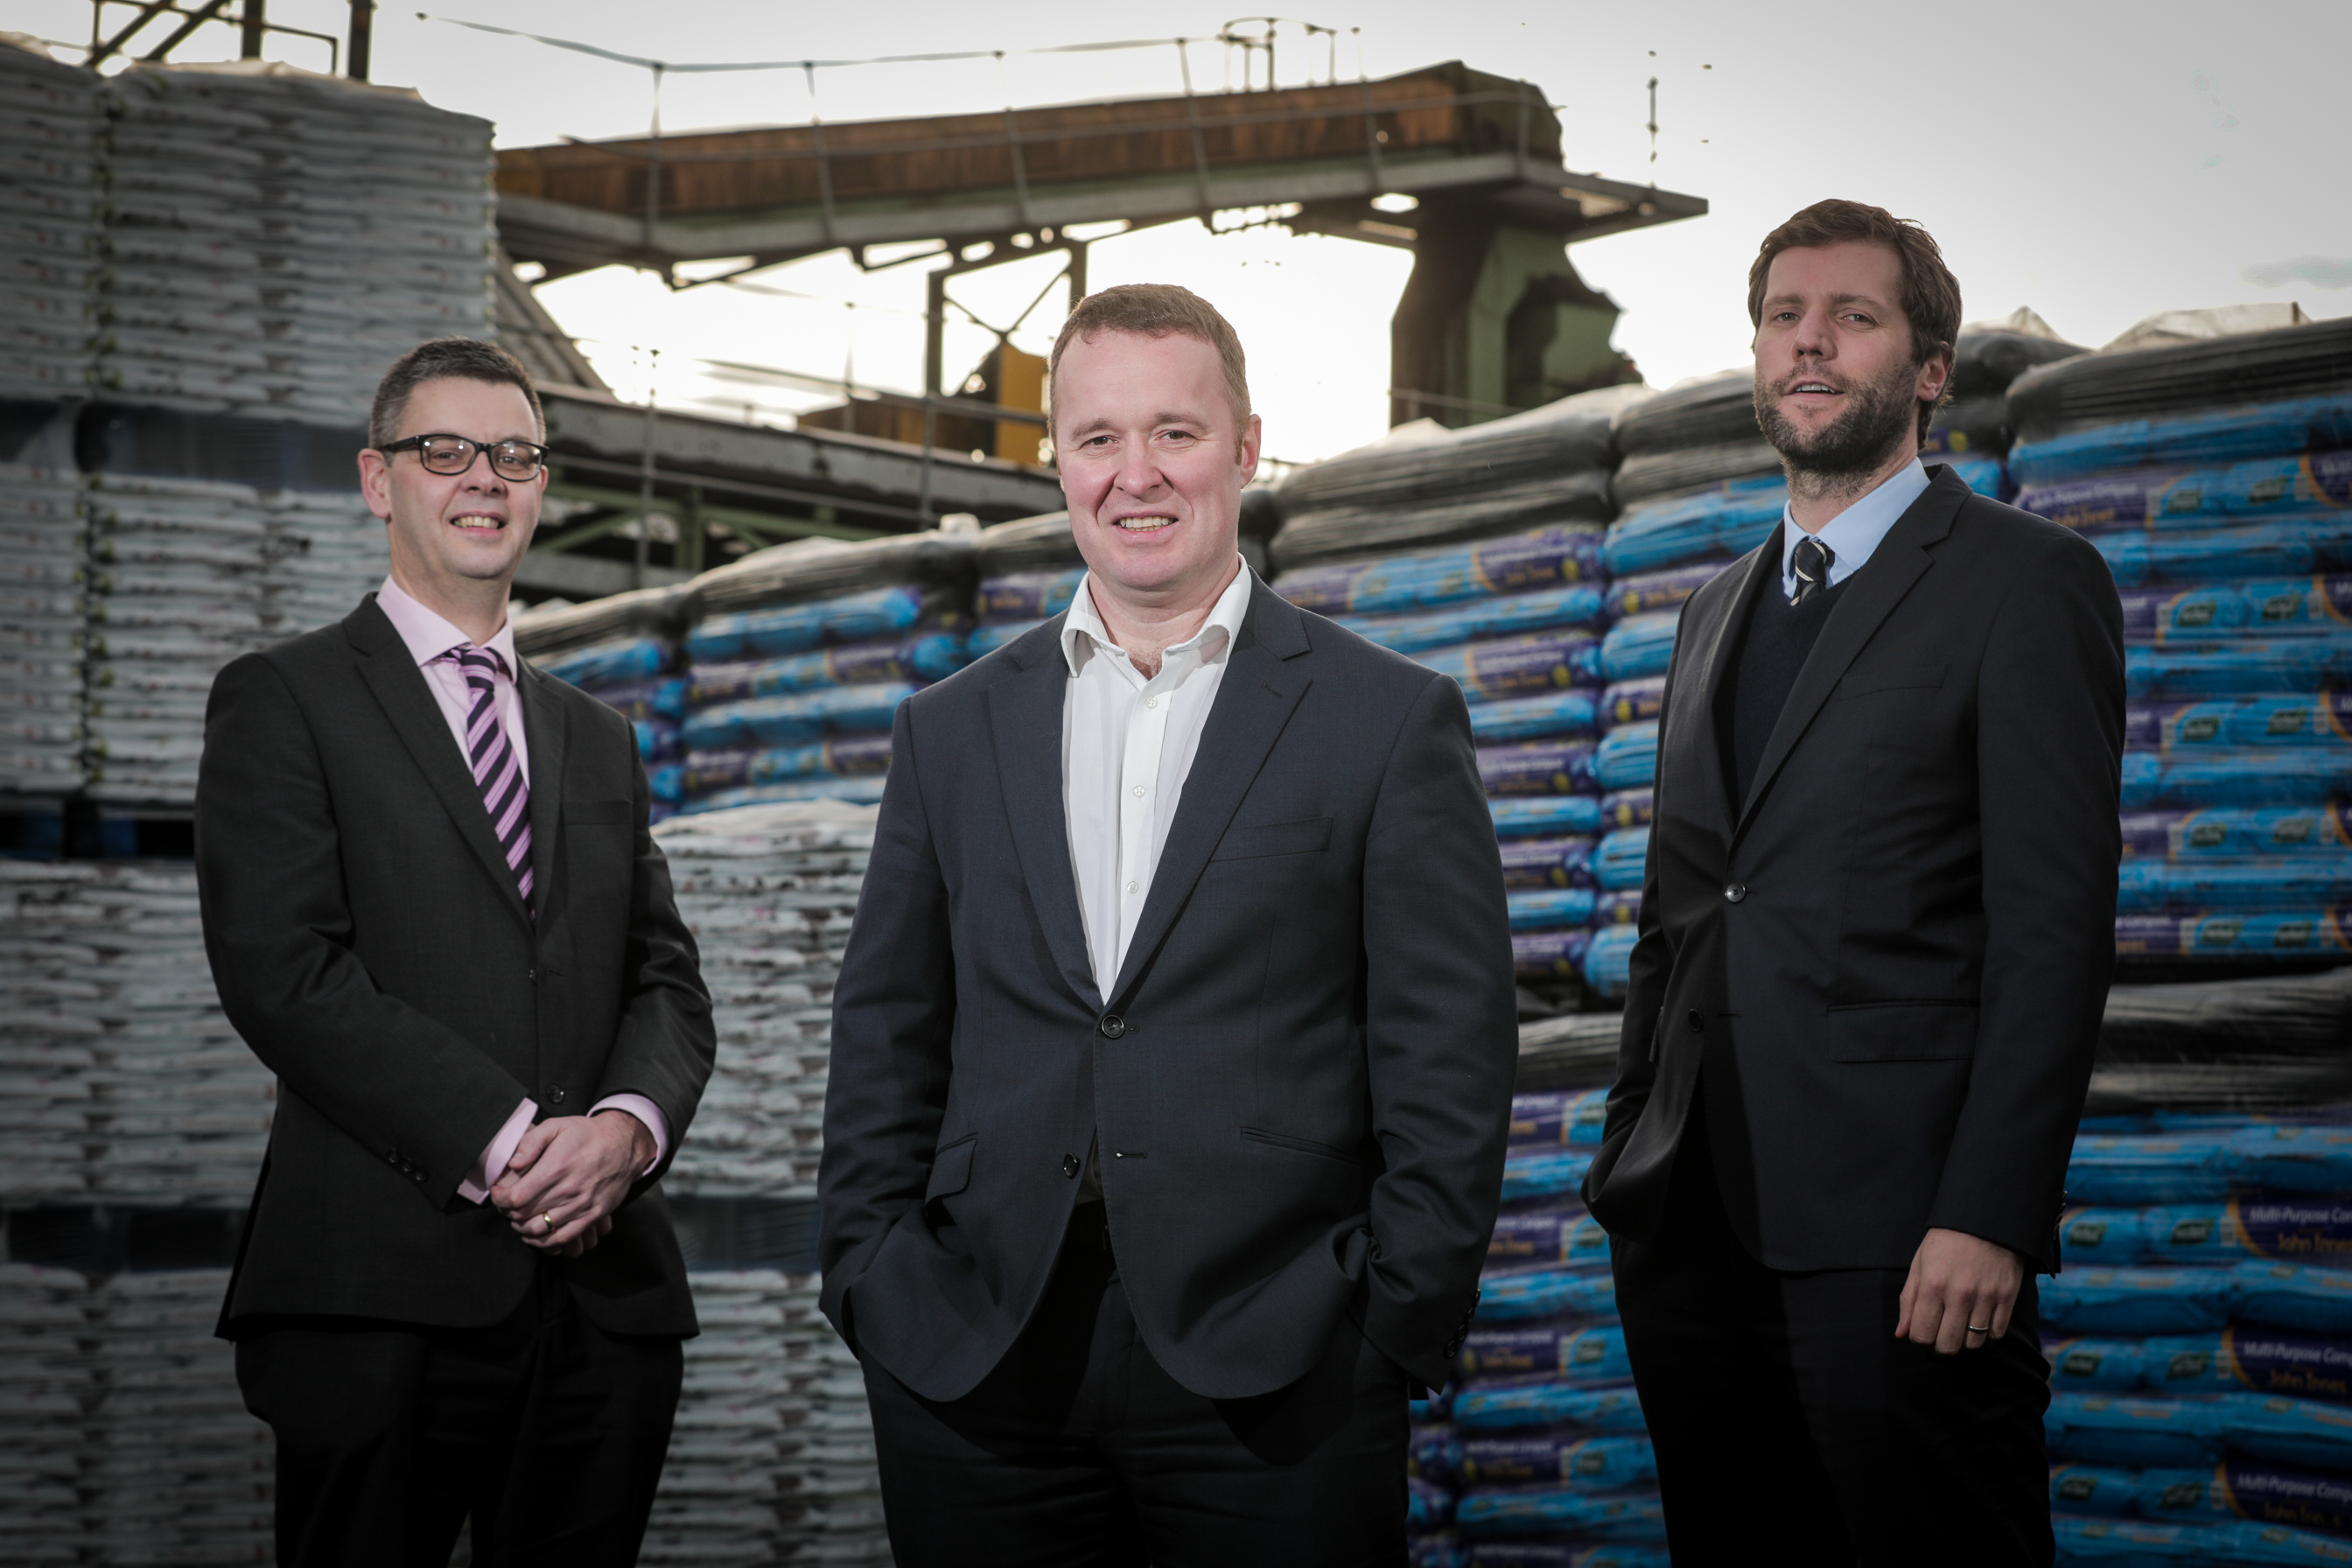 Three men in suits stand, spread out from each other slightly, in a workyard. Behind them is machinery for transporting products and stacks of bags of soil.